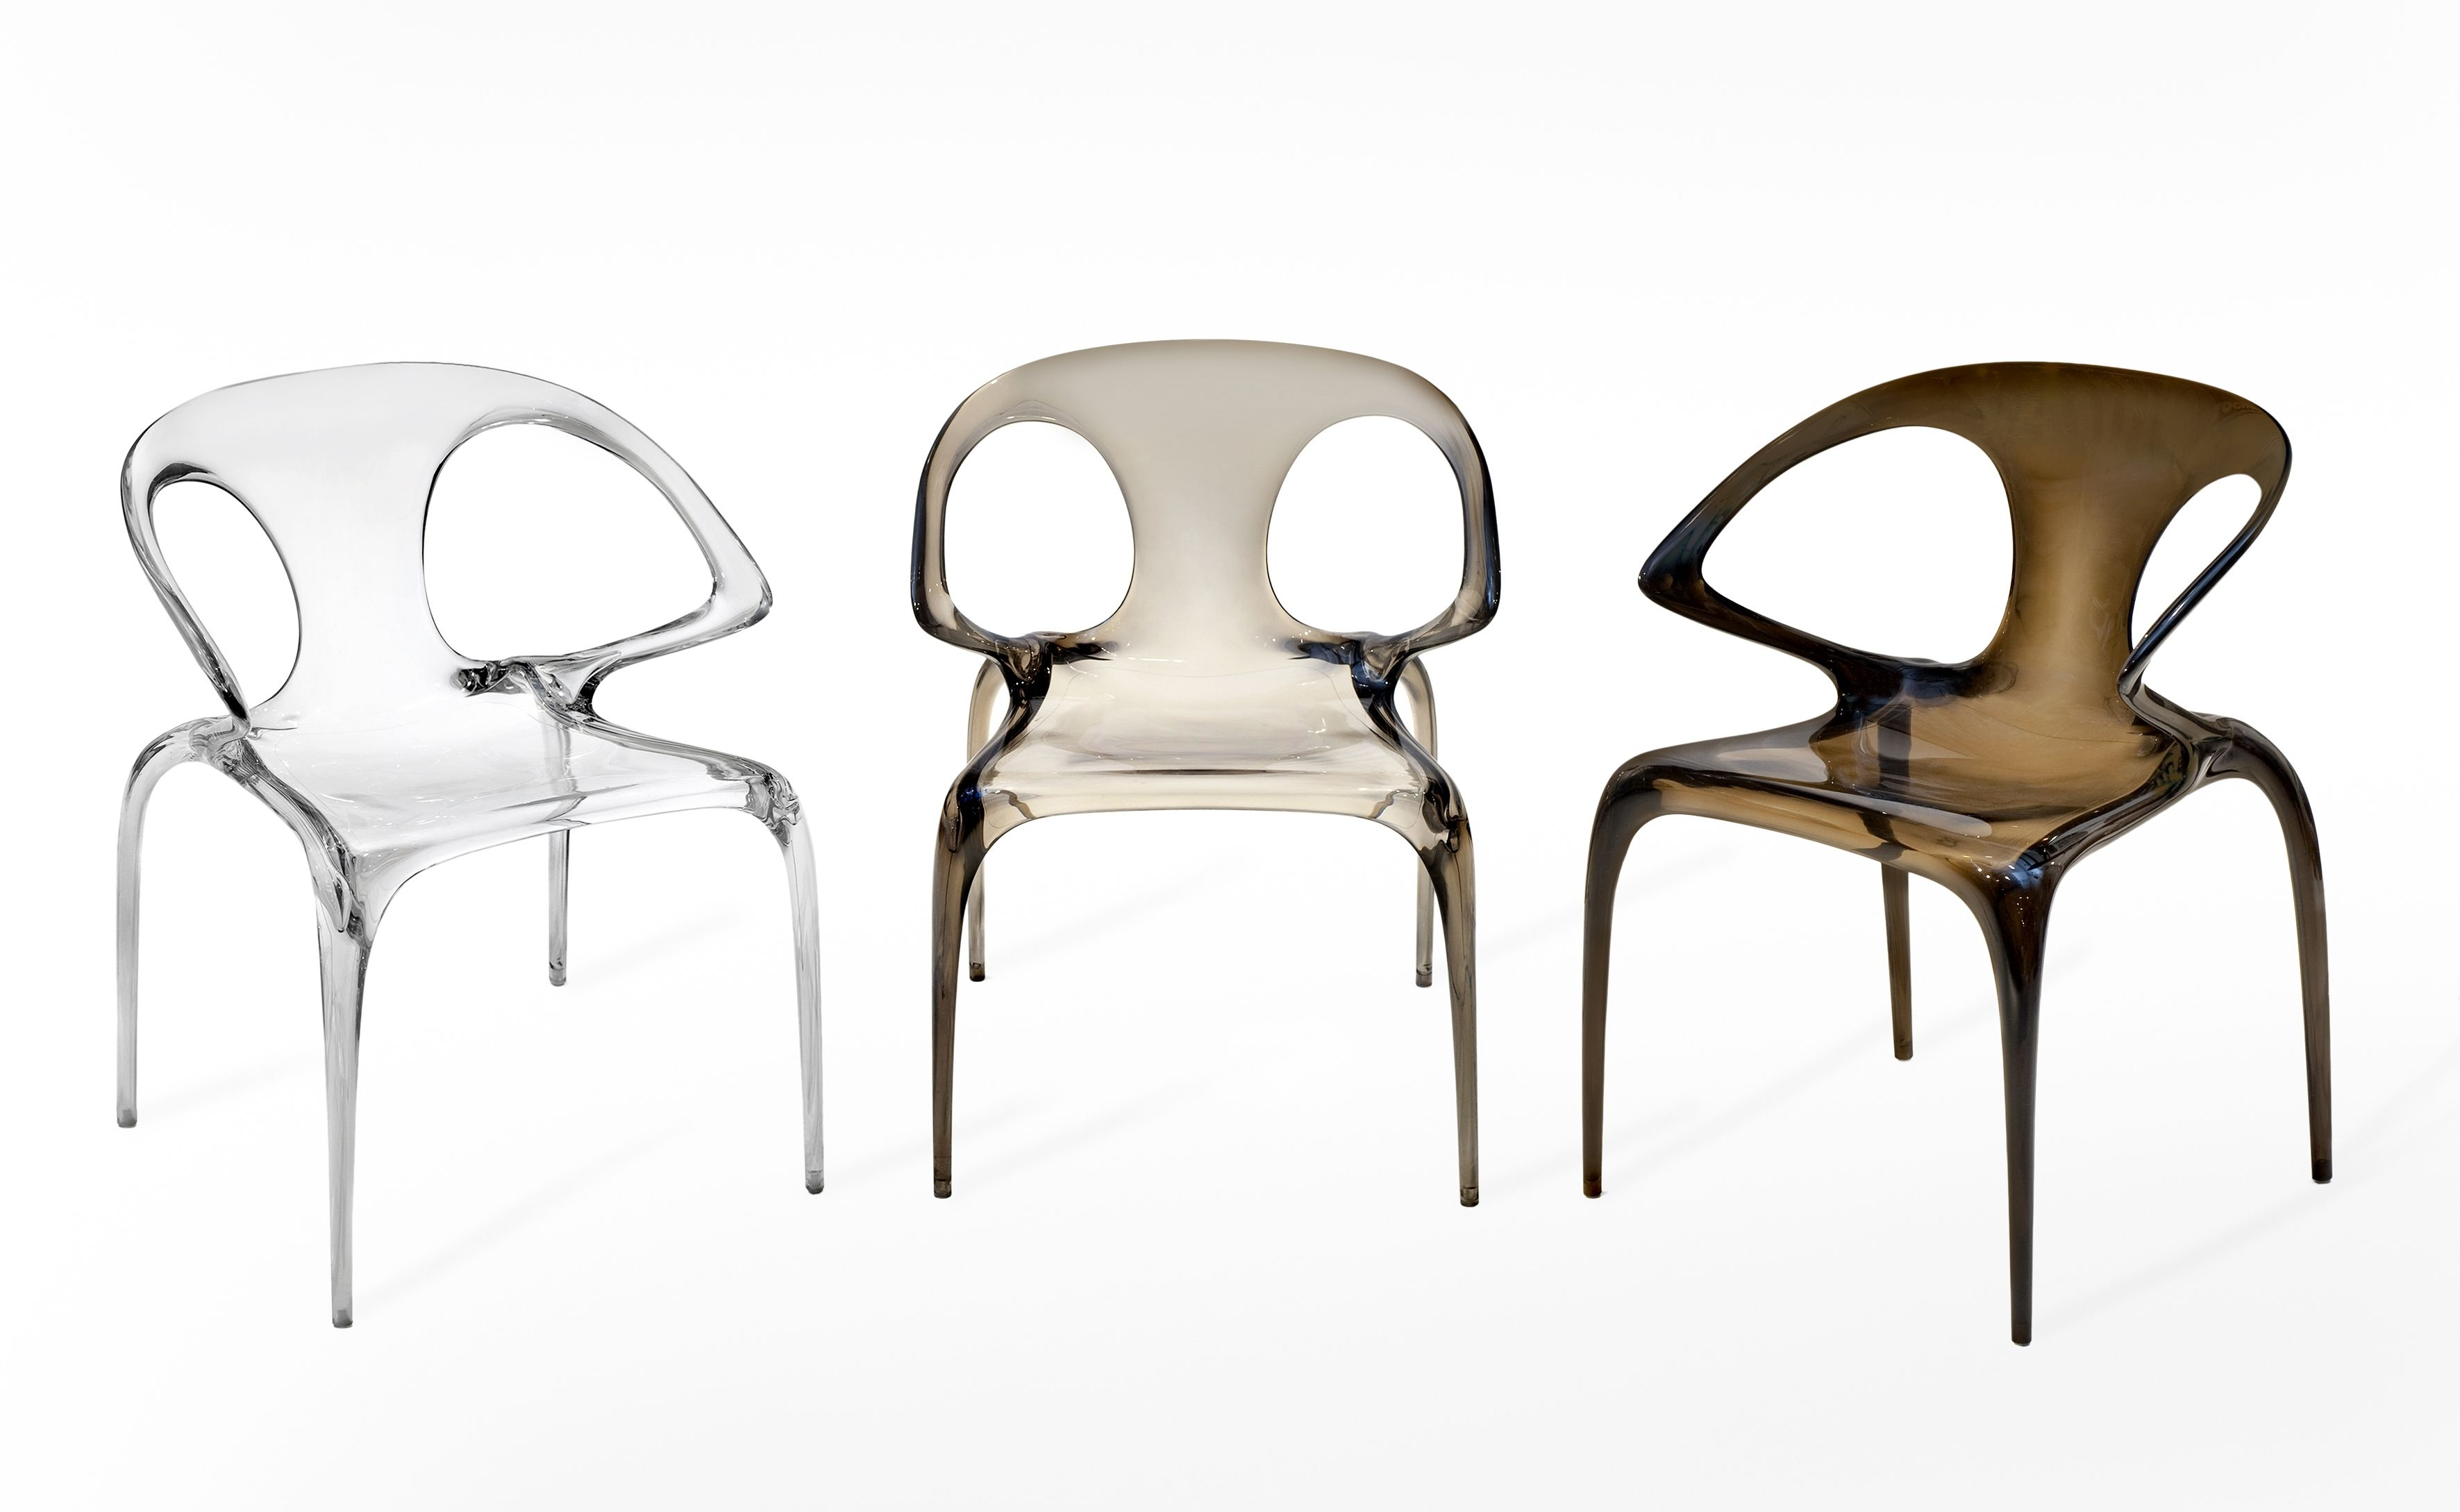 Lucite Ava Chairs Roche Bobois See More Of The Story Http Pubs